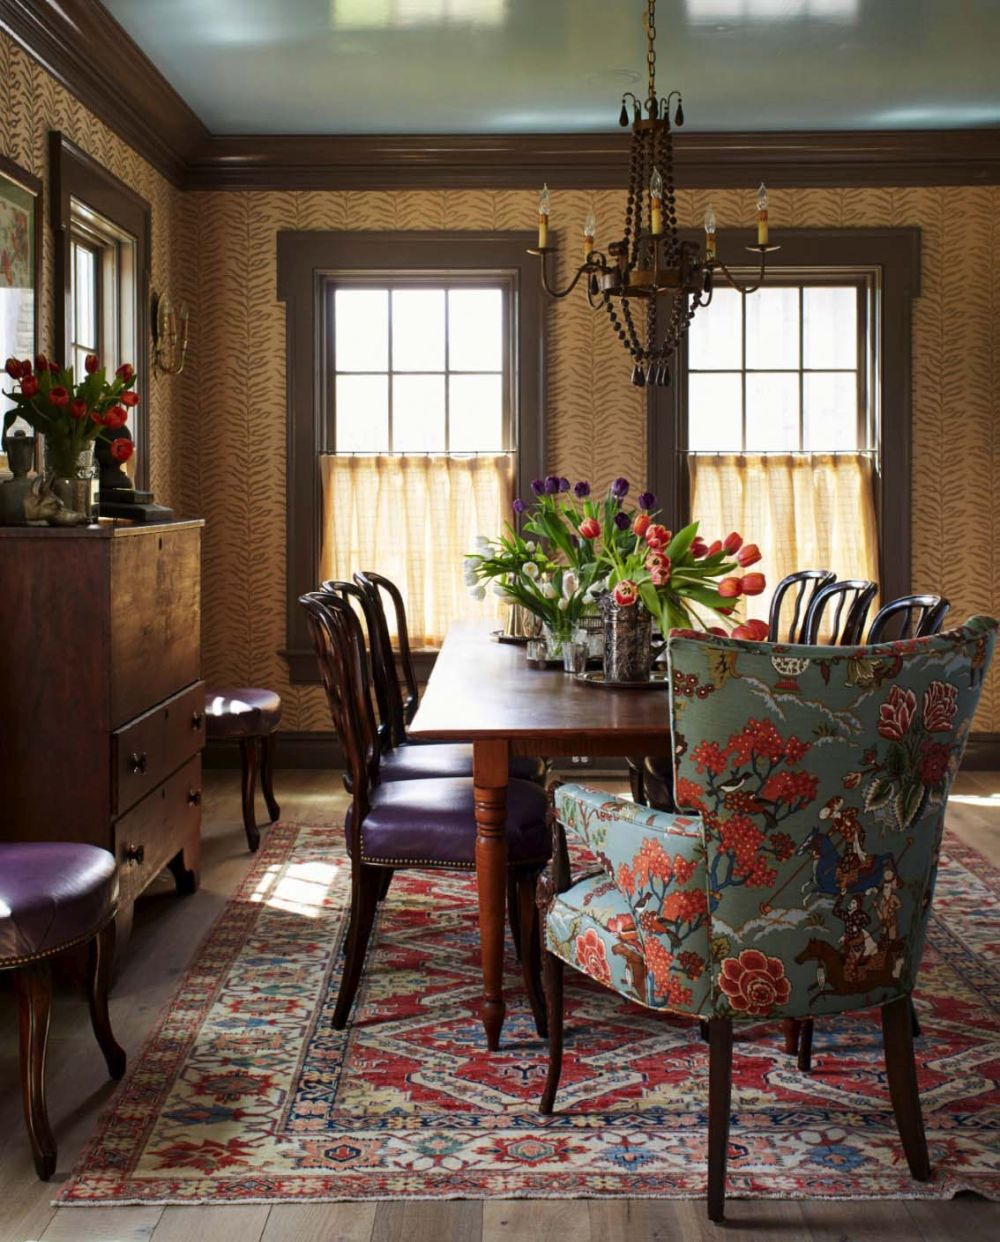 The dining room looks and feels more formal compared to the rest of the spaces yet remains very welcoming